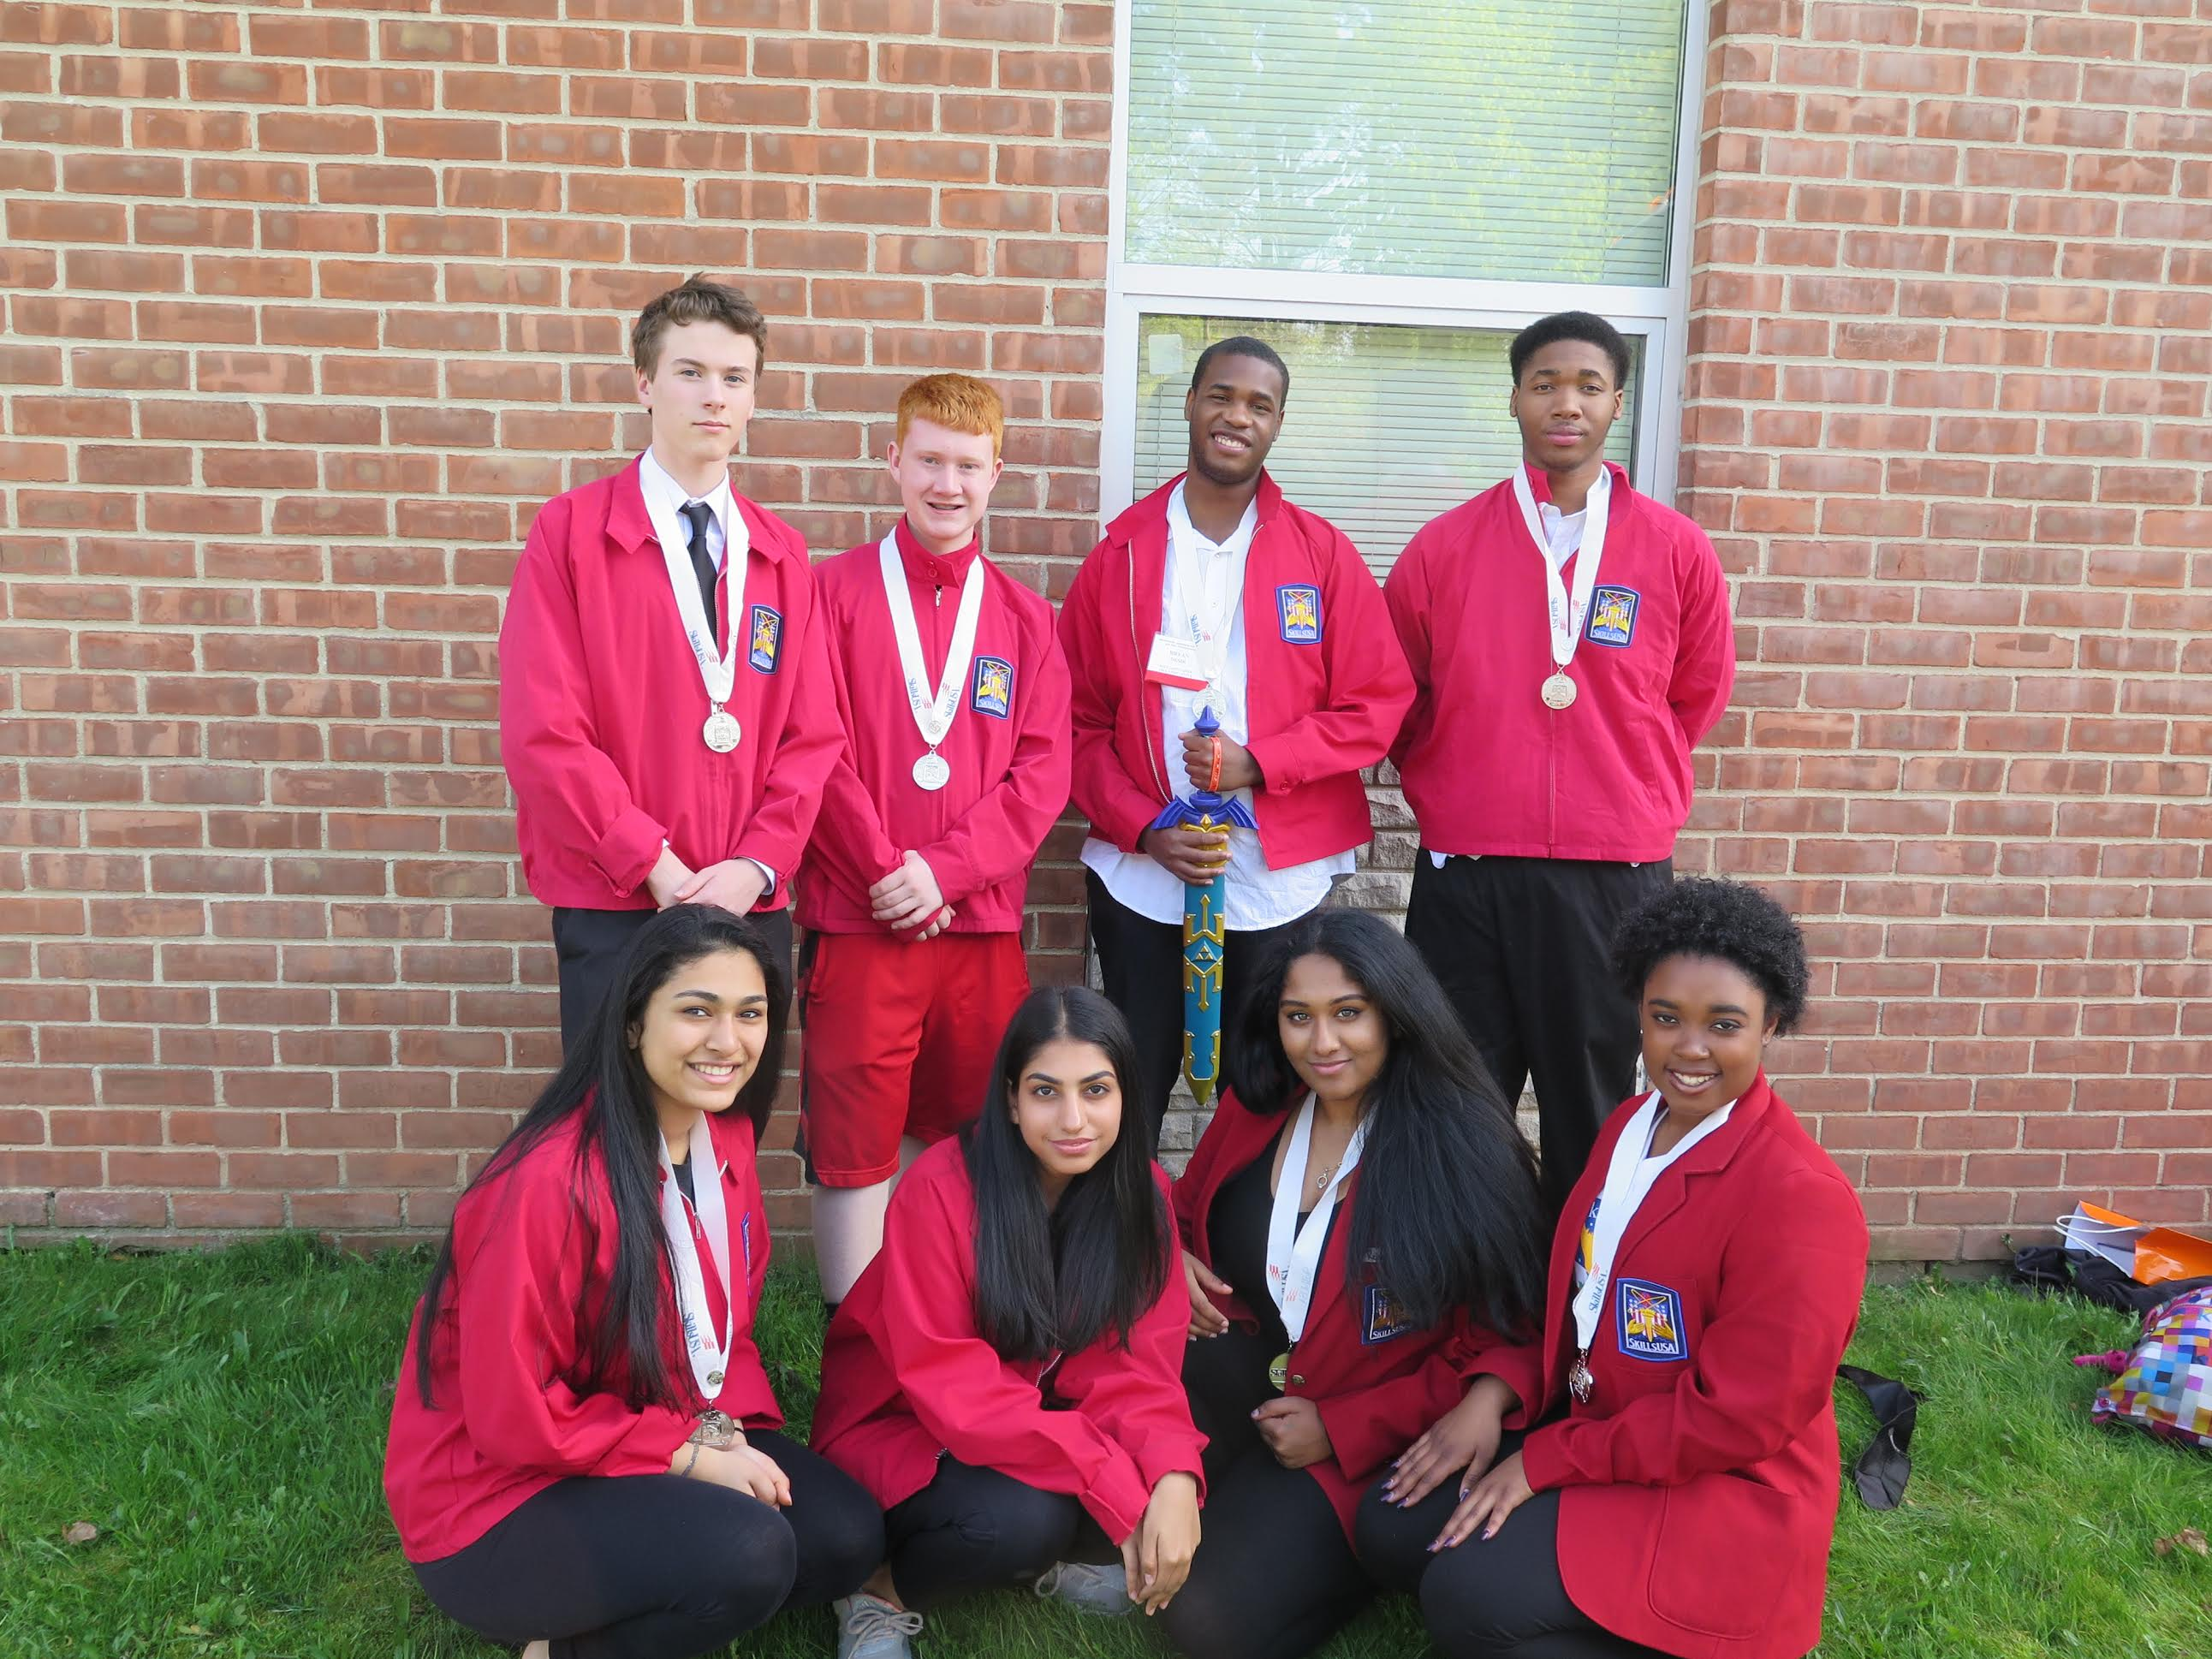 ROCKLAND BOCES STUDENTS COMPETE IN SKILLS USA LEADERSHIP CONFERENCE